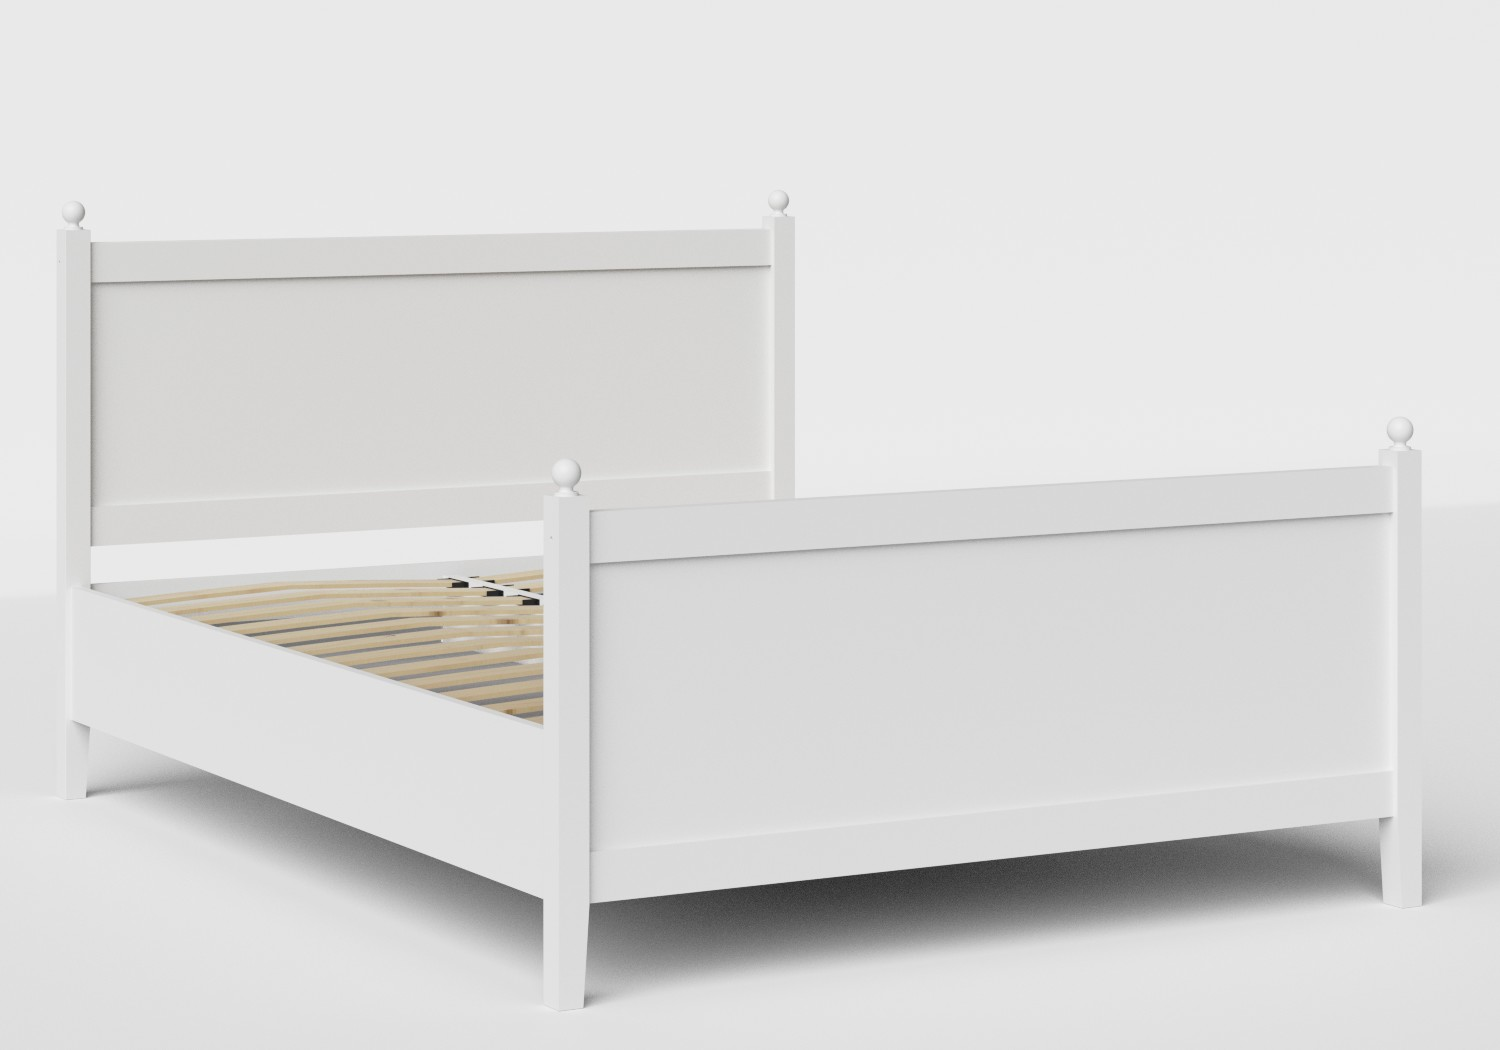 Marbella Wood Bed in White shown with slatted frame